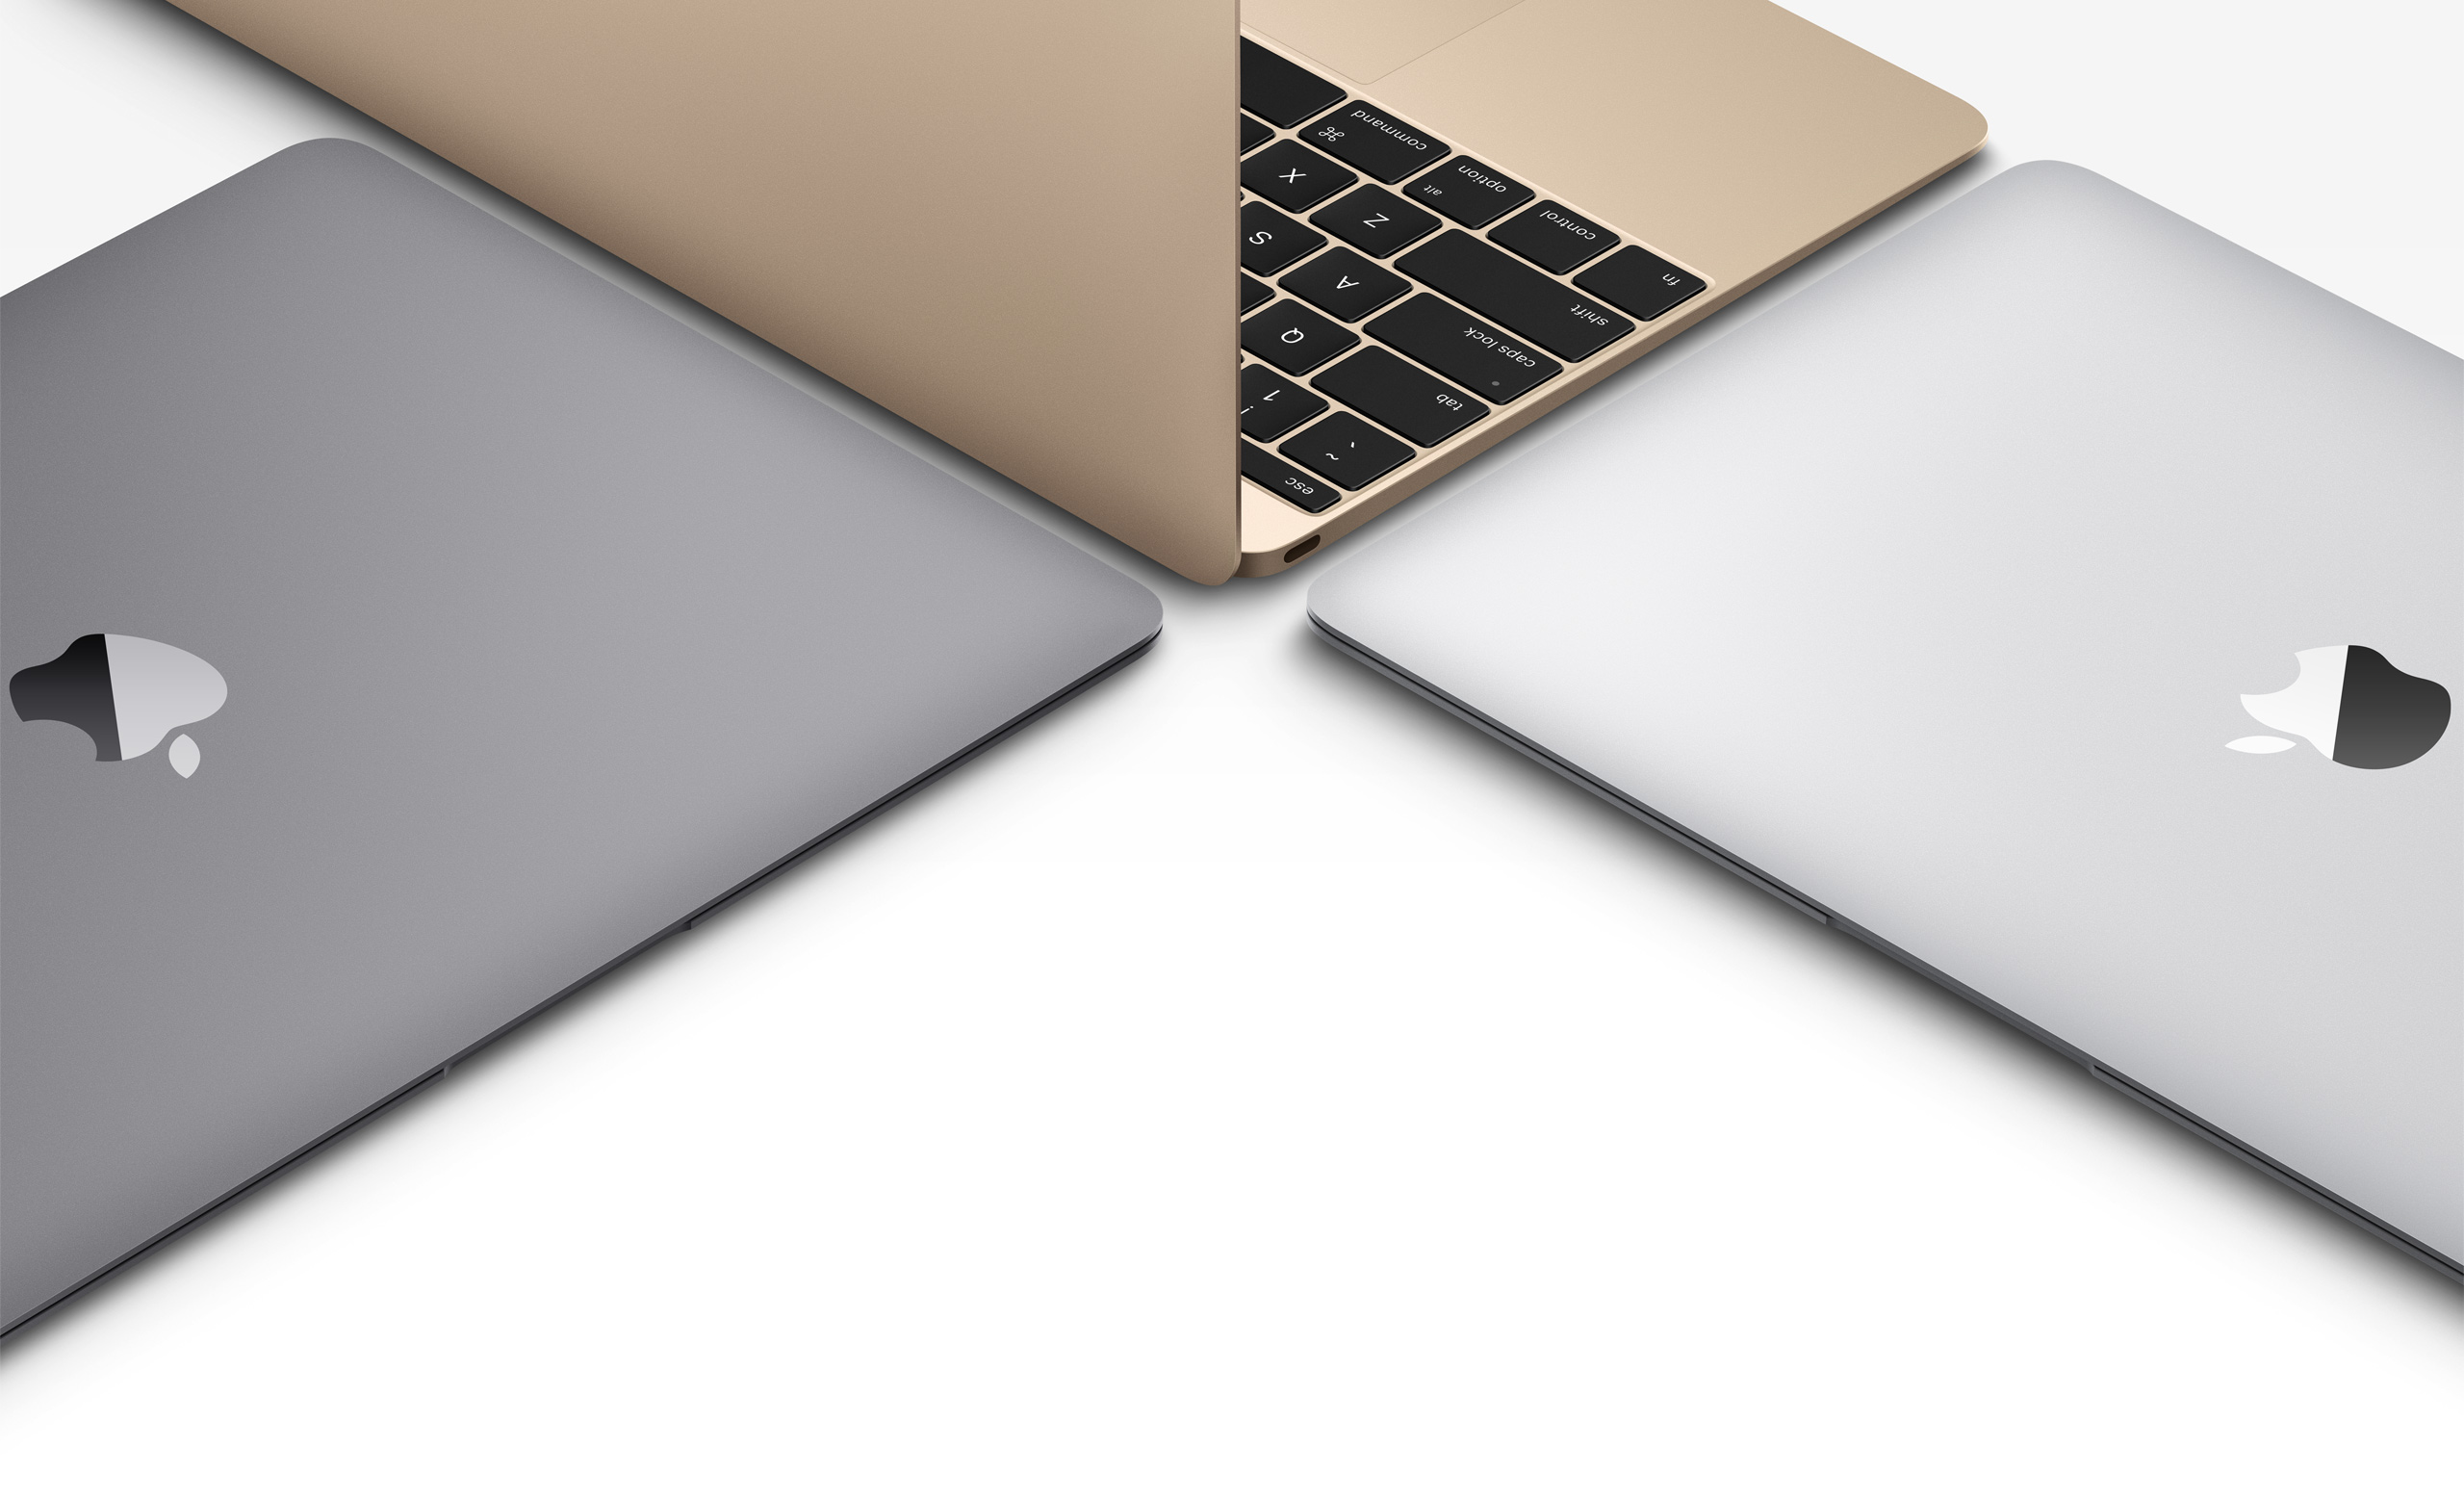 macbook gris